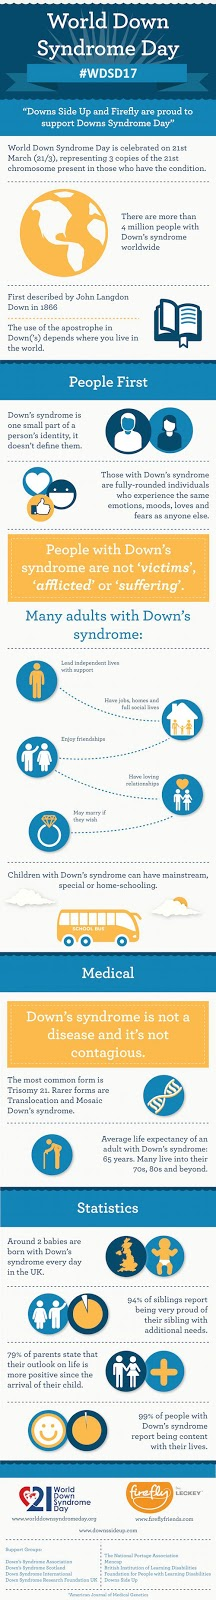 Down's Syndrome Infographic